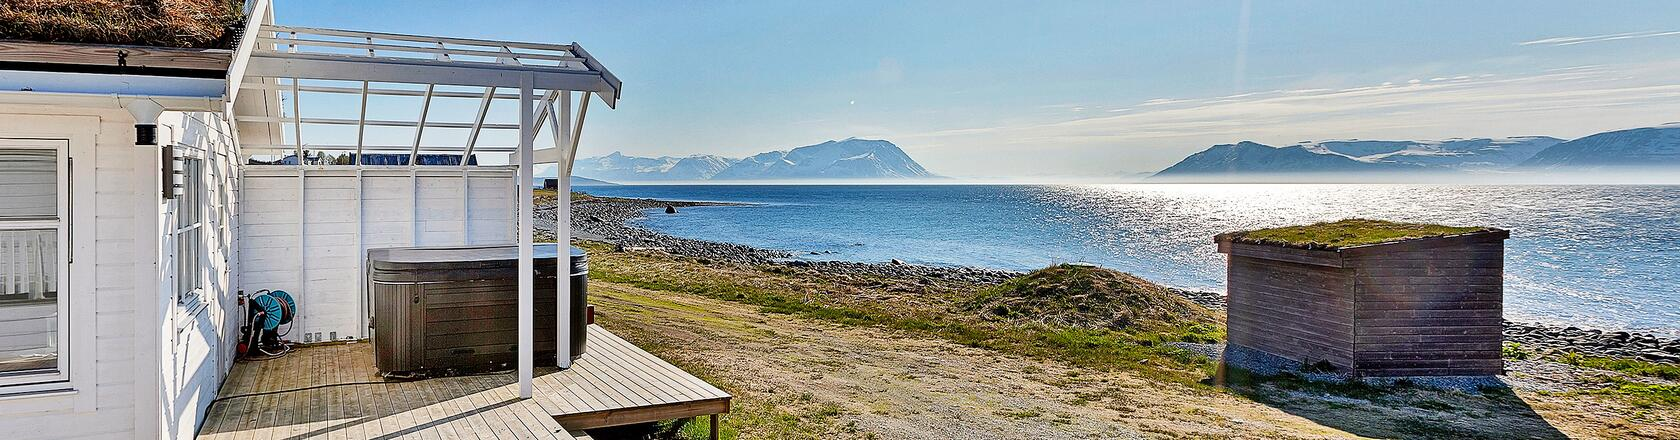 Nordland - Lofoten in Norway — Rent a holiday home with DanCenter